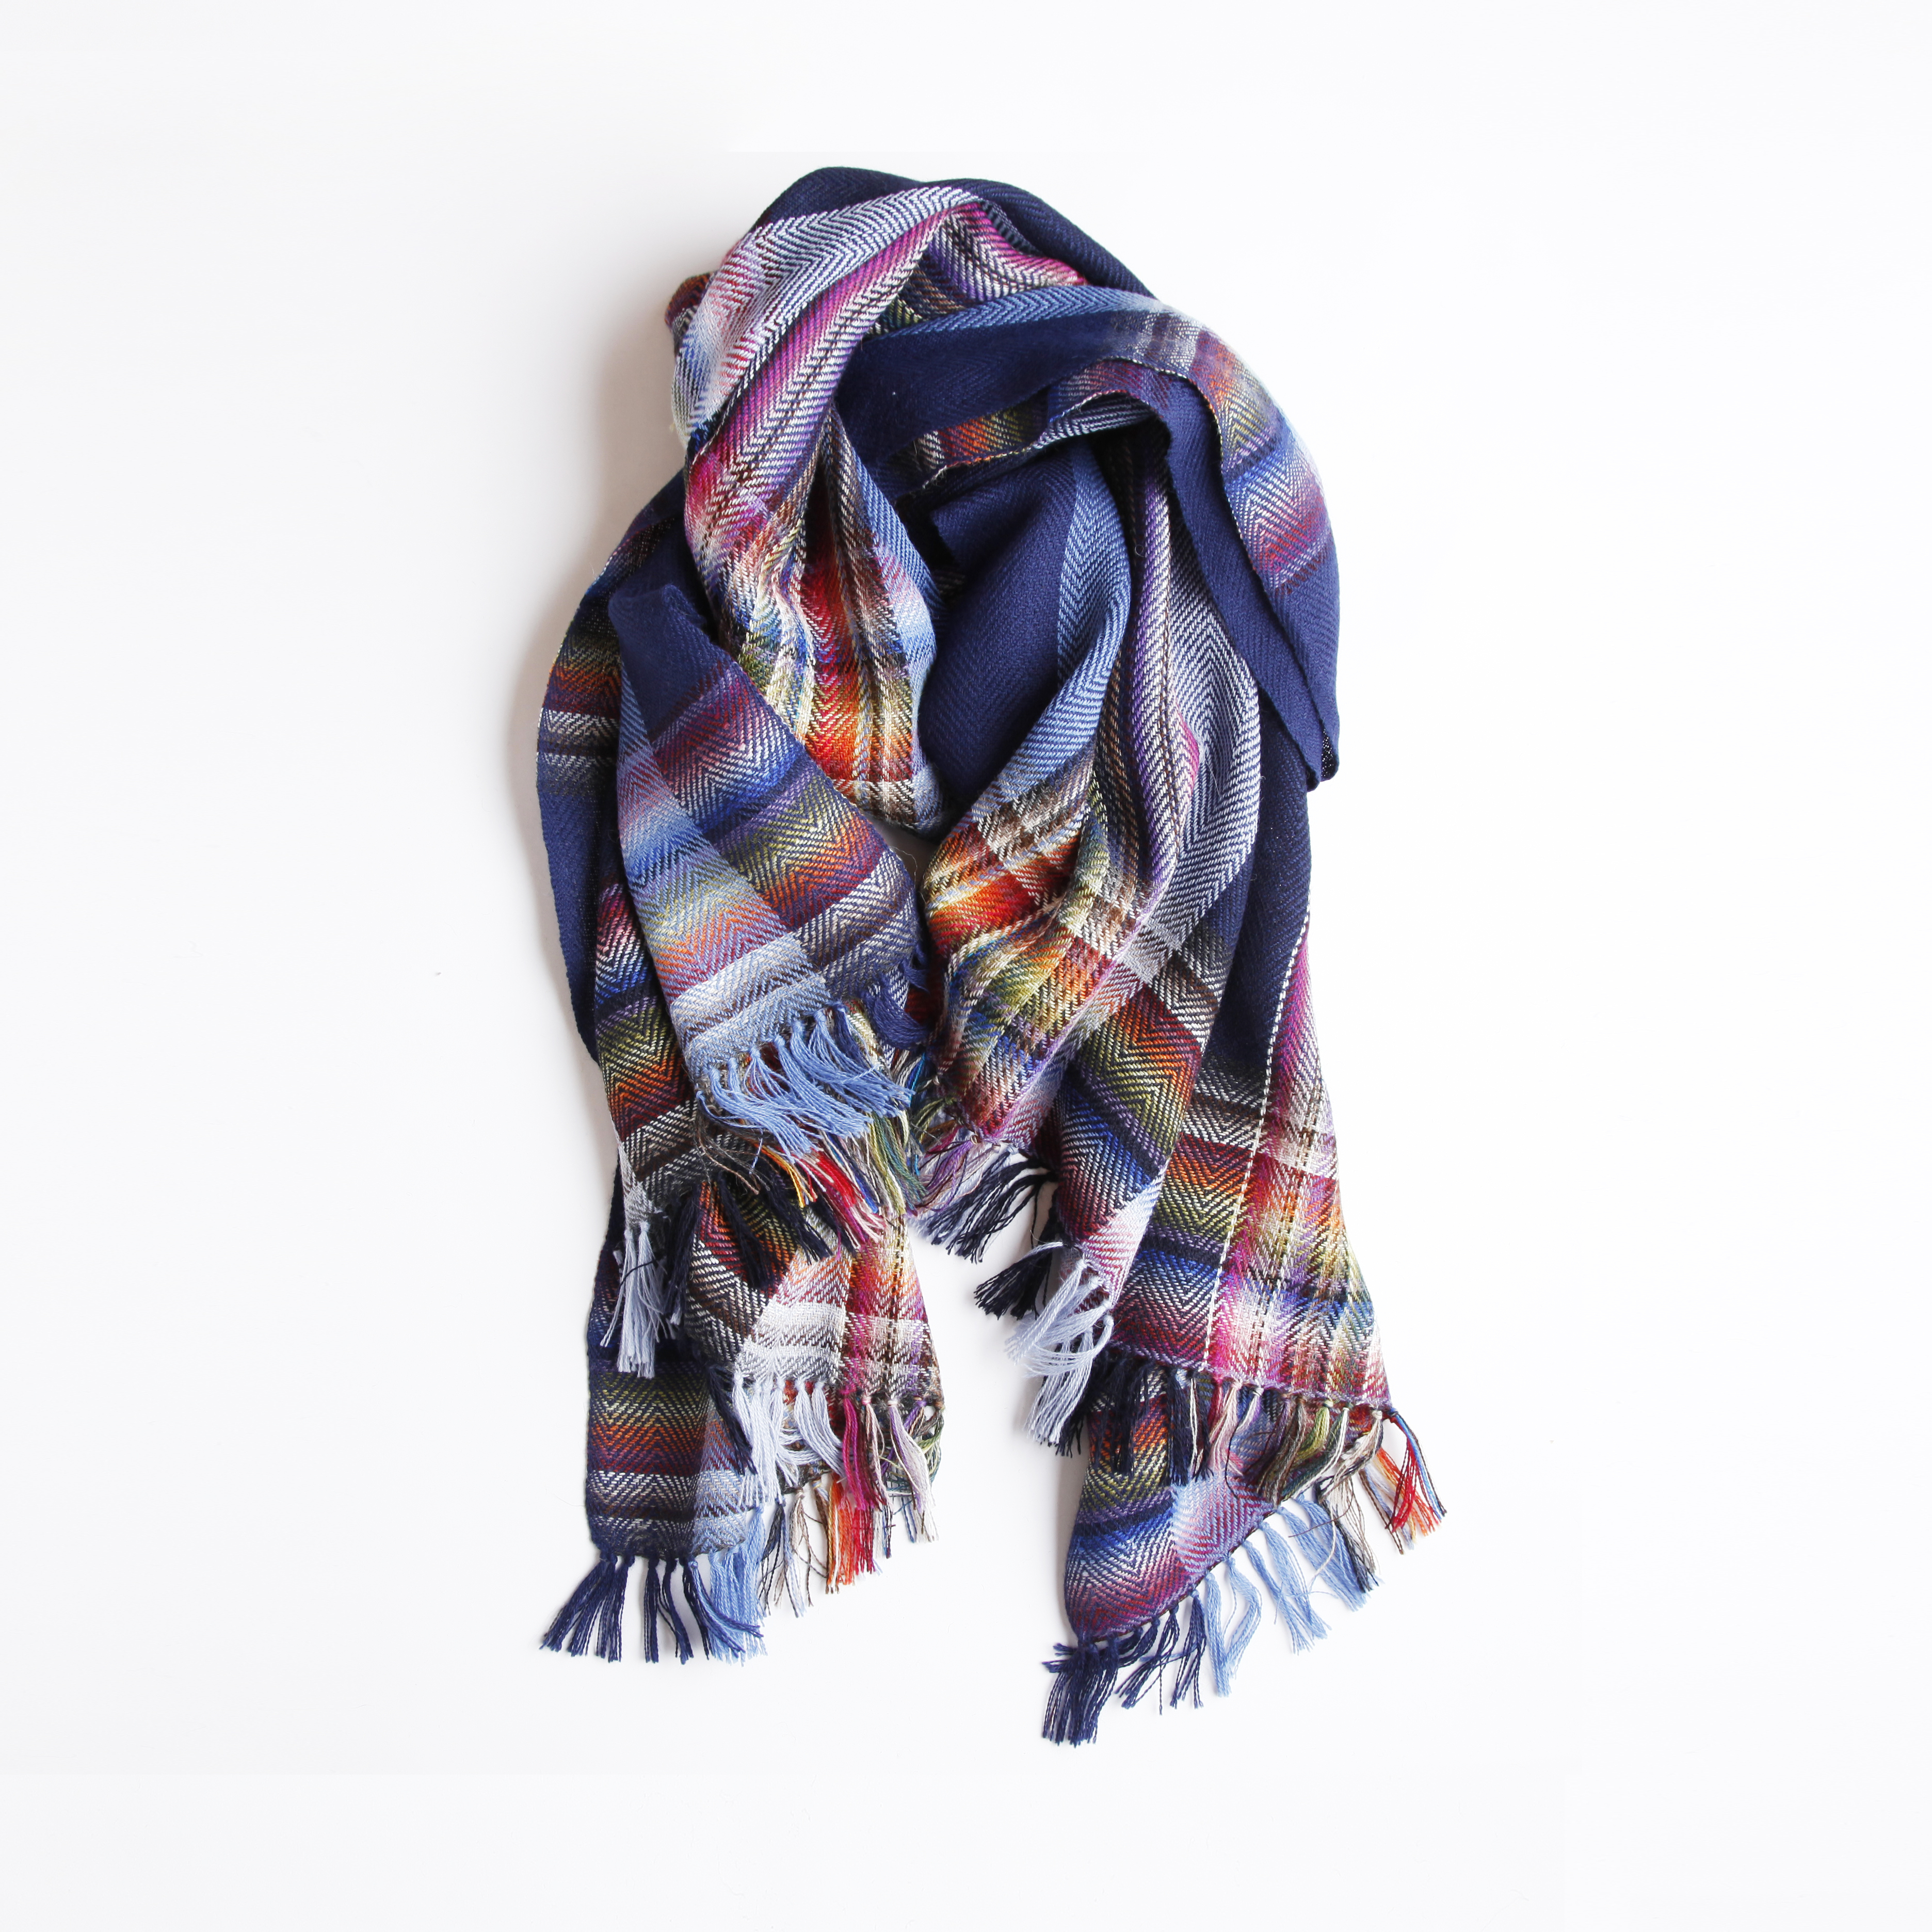 THE INOUE BROTHERS/Multi Coloured Scarf/Navy